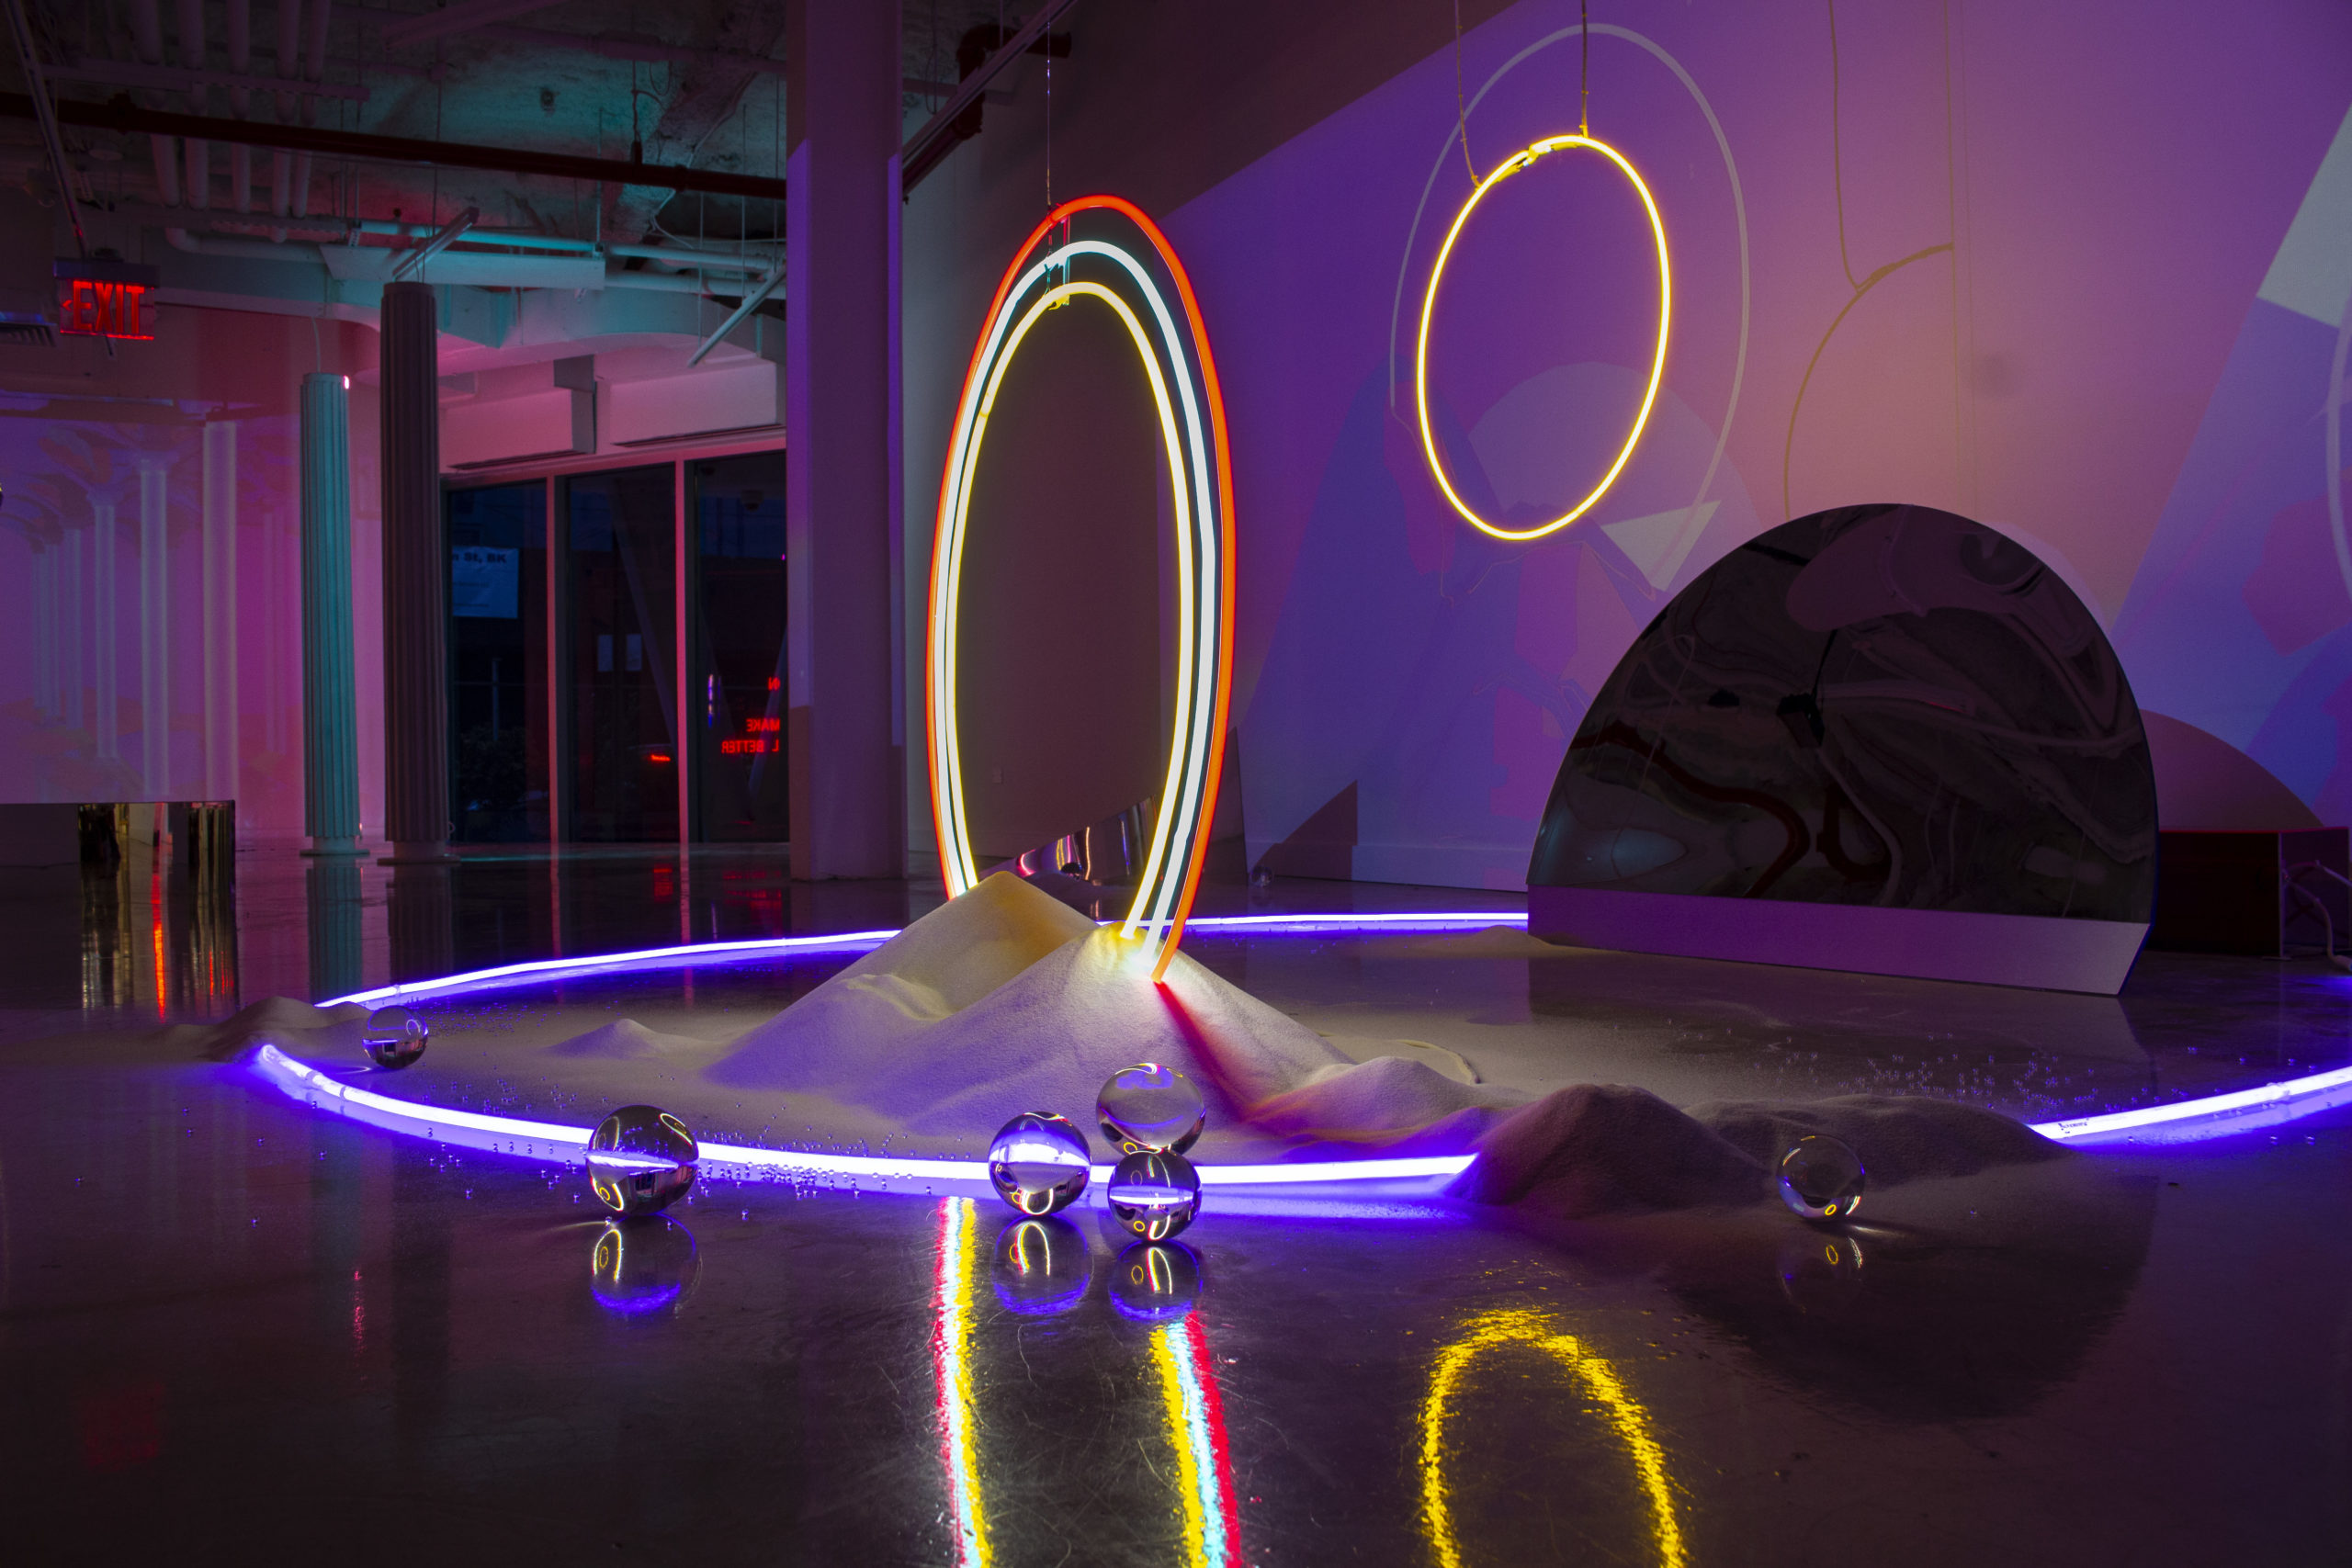 Lucia Riffel and Lily Reeves Outer Special installation at Urban Glass